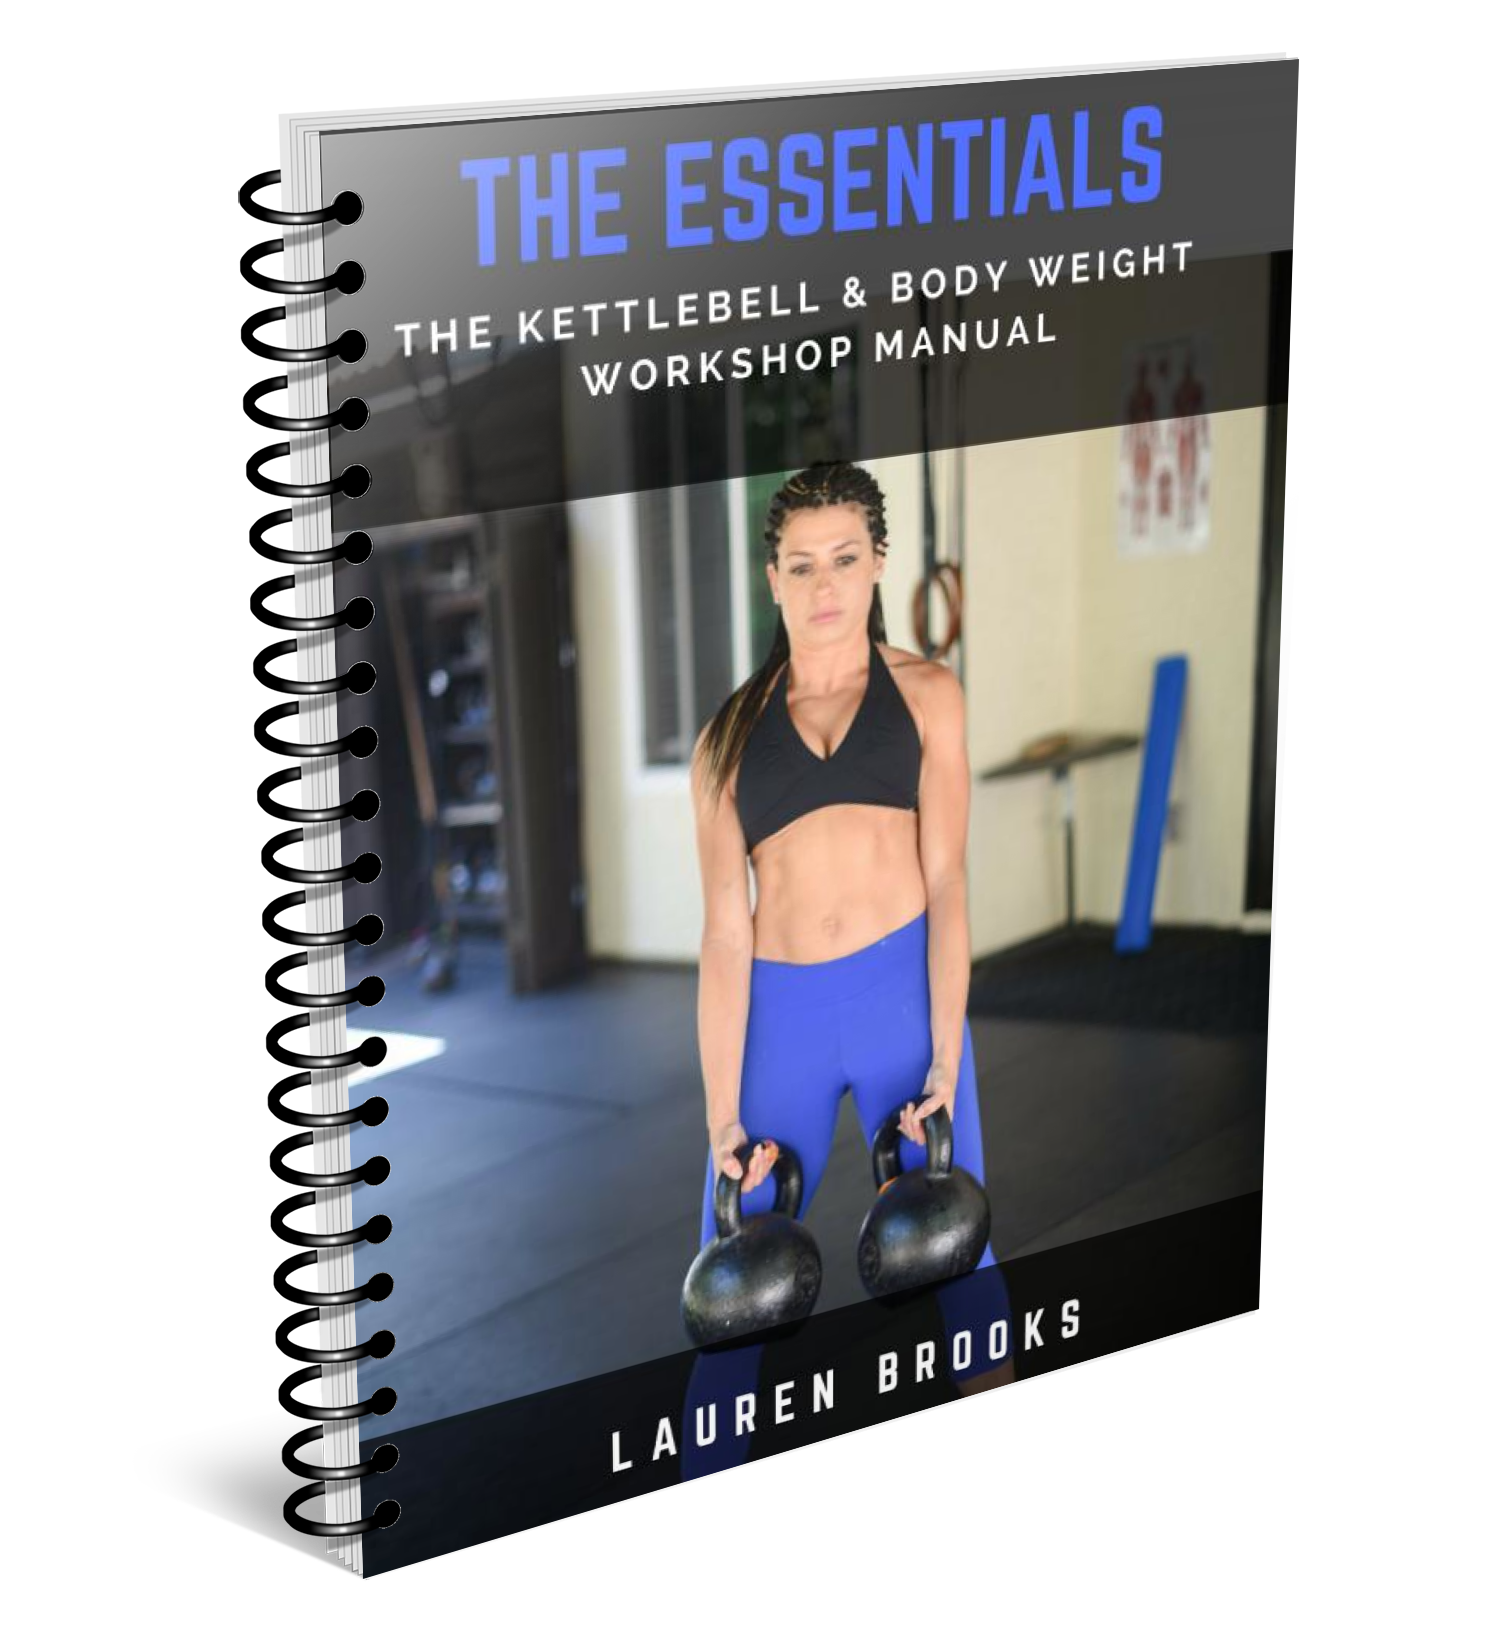 Essentials Workshop Weekend - Kettlebell & Body Weight with some MELT Method - Member Discounts available - Philadelphia, Pennsylvania